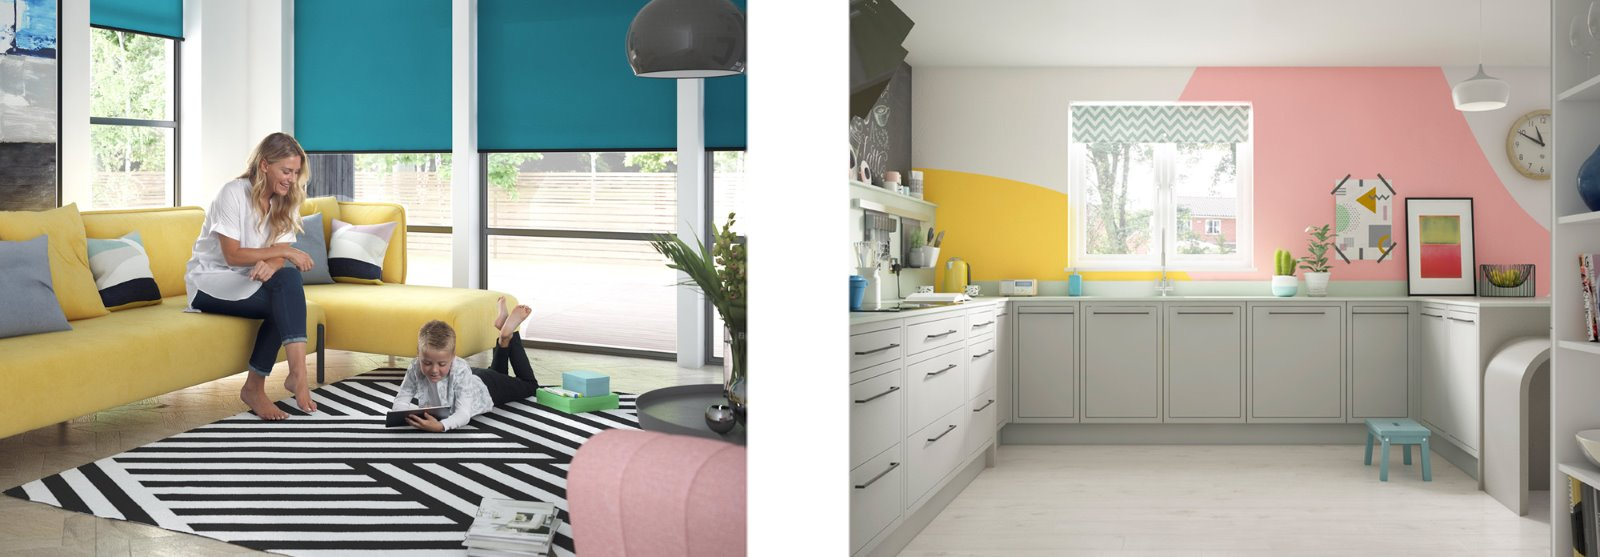 Colour blocking family fun design Set Visions